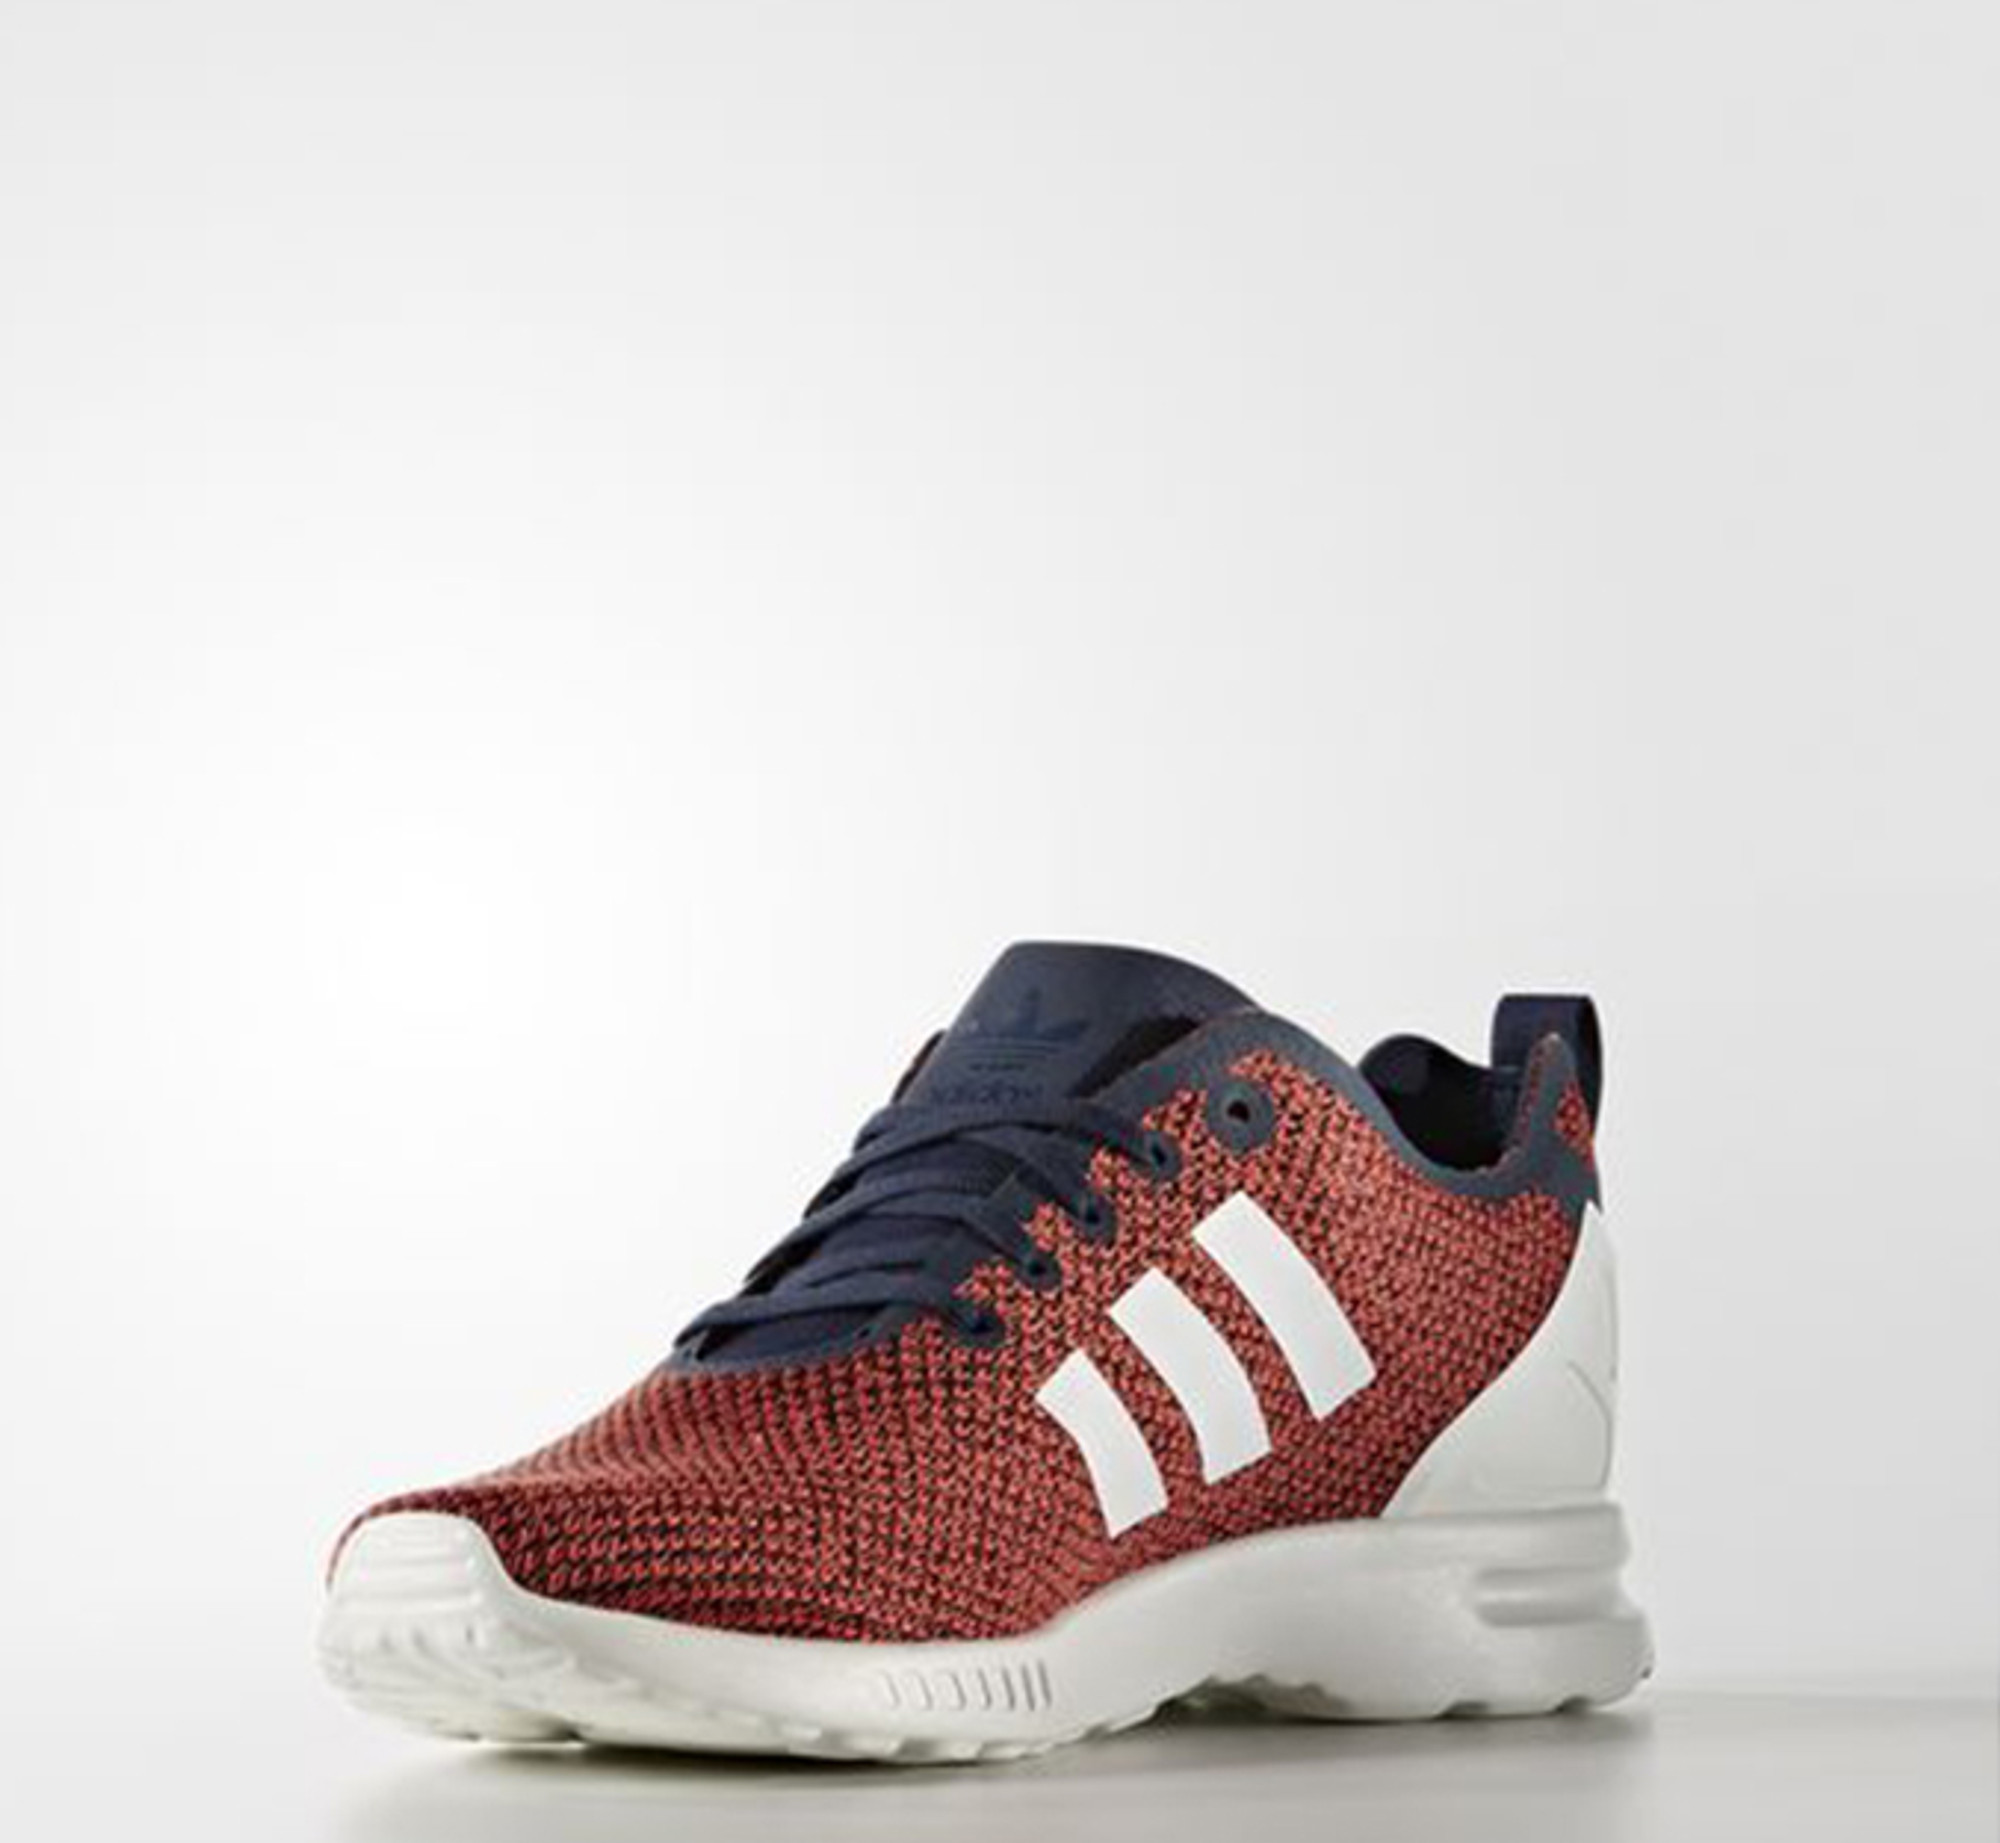 differently bac41 2ffe4 ... adidas ZX Flux ADV Smooth for Women · A MESH SHOE WITH A SNAKESKIN  PATTERN A MESH SHOE WITH A SNAKESKIN PATTERN ...